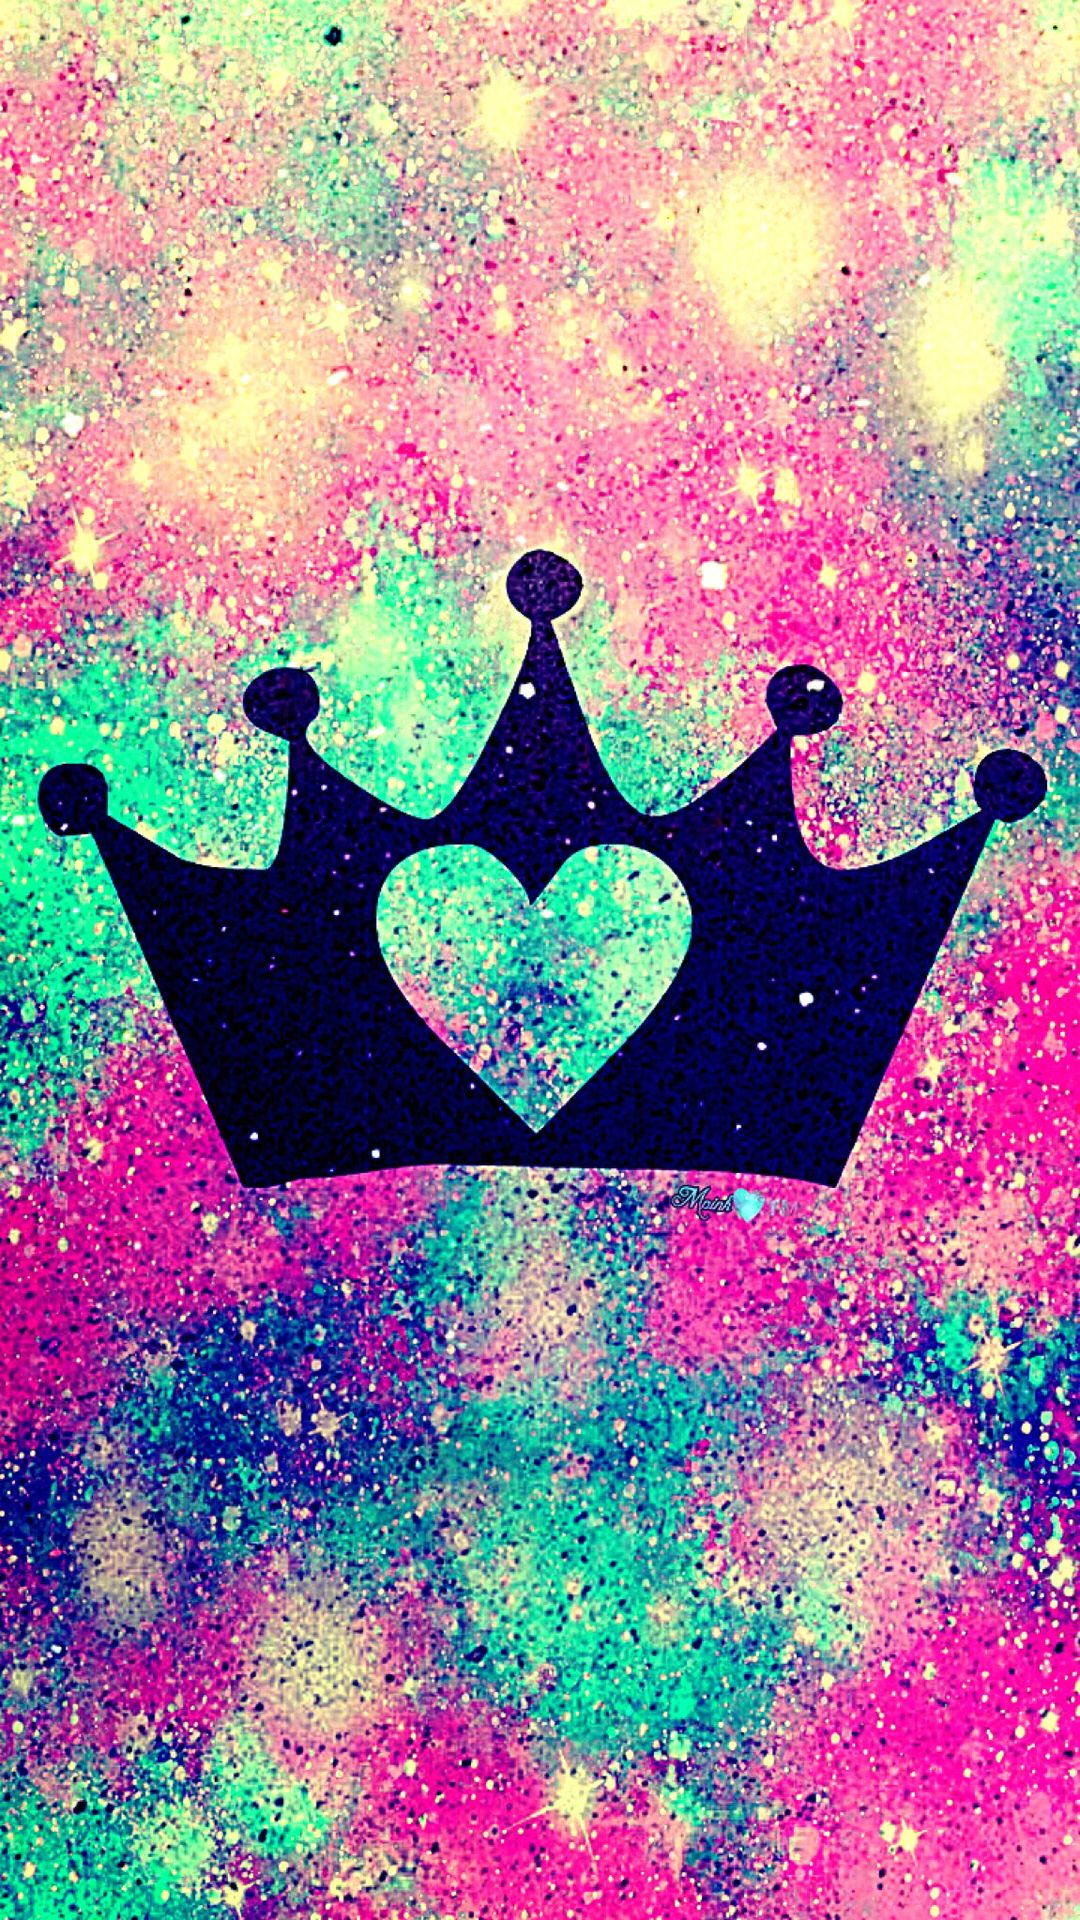 Heart Princess Galaxy Wallpaper Androidwallpaper